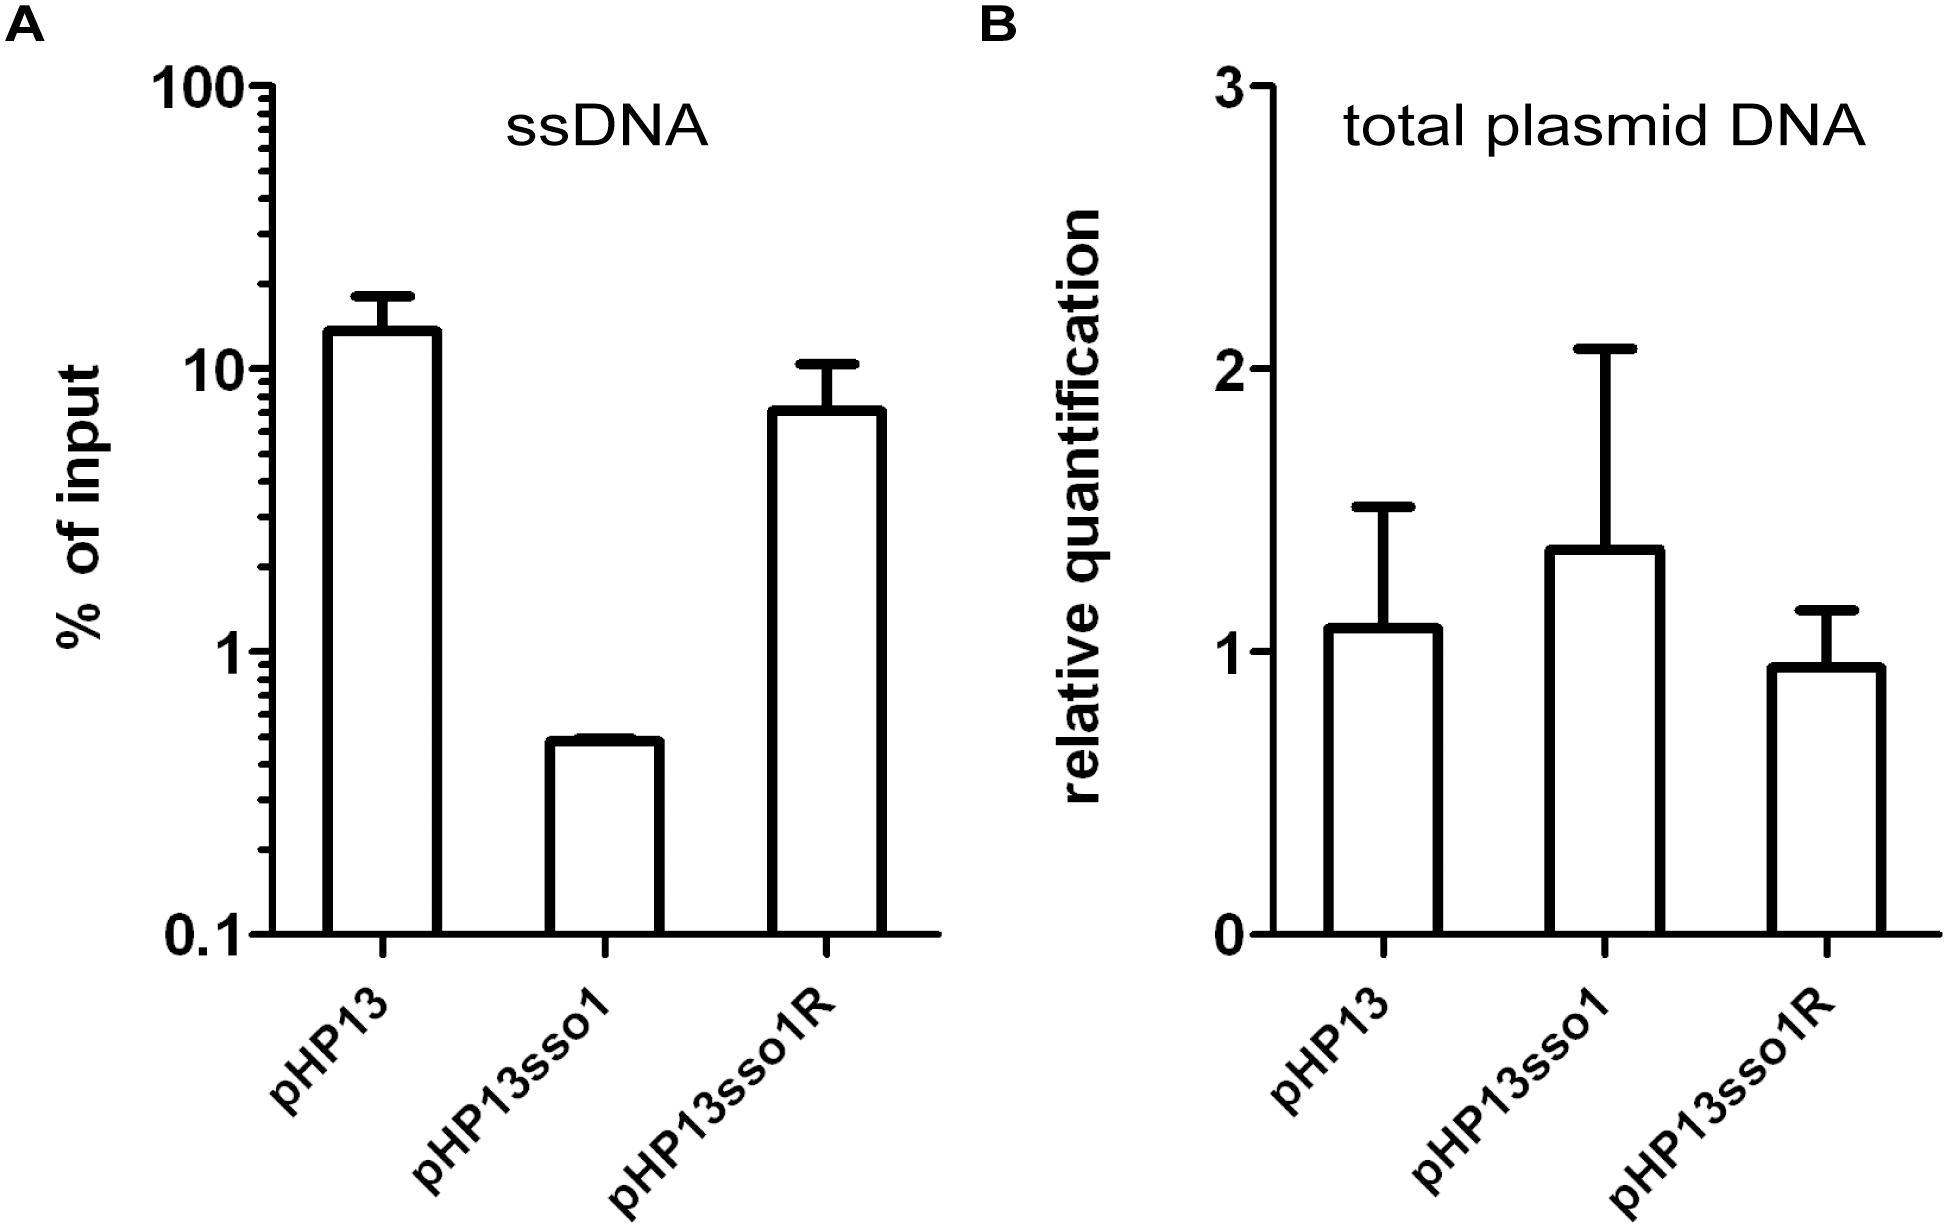 The amount of plasmid DNA associated with Ssb-GFP was decreased in the plasmid with <i>sso1</i>.